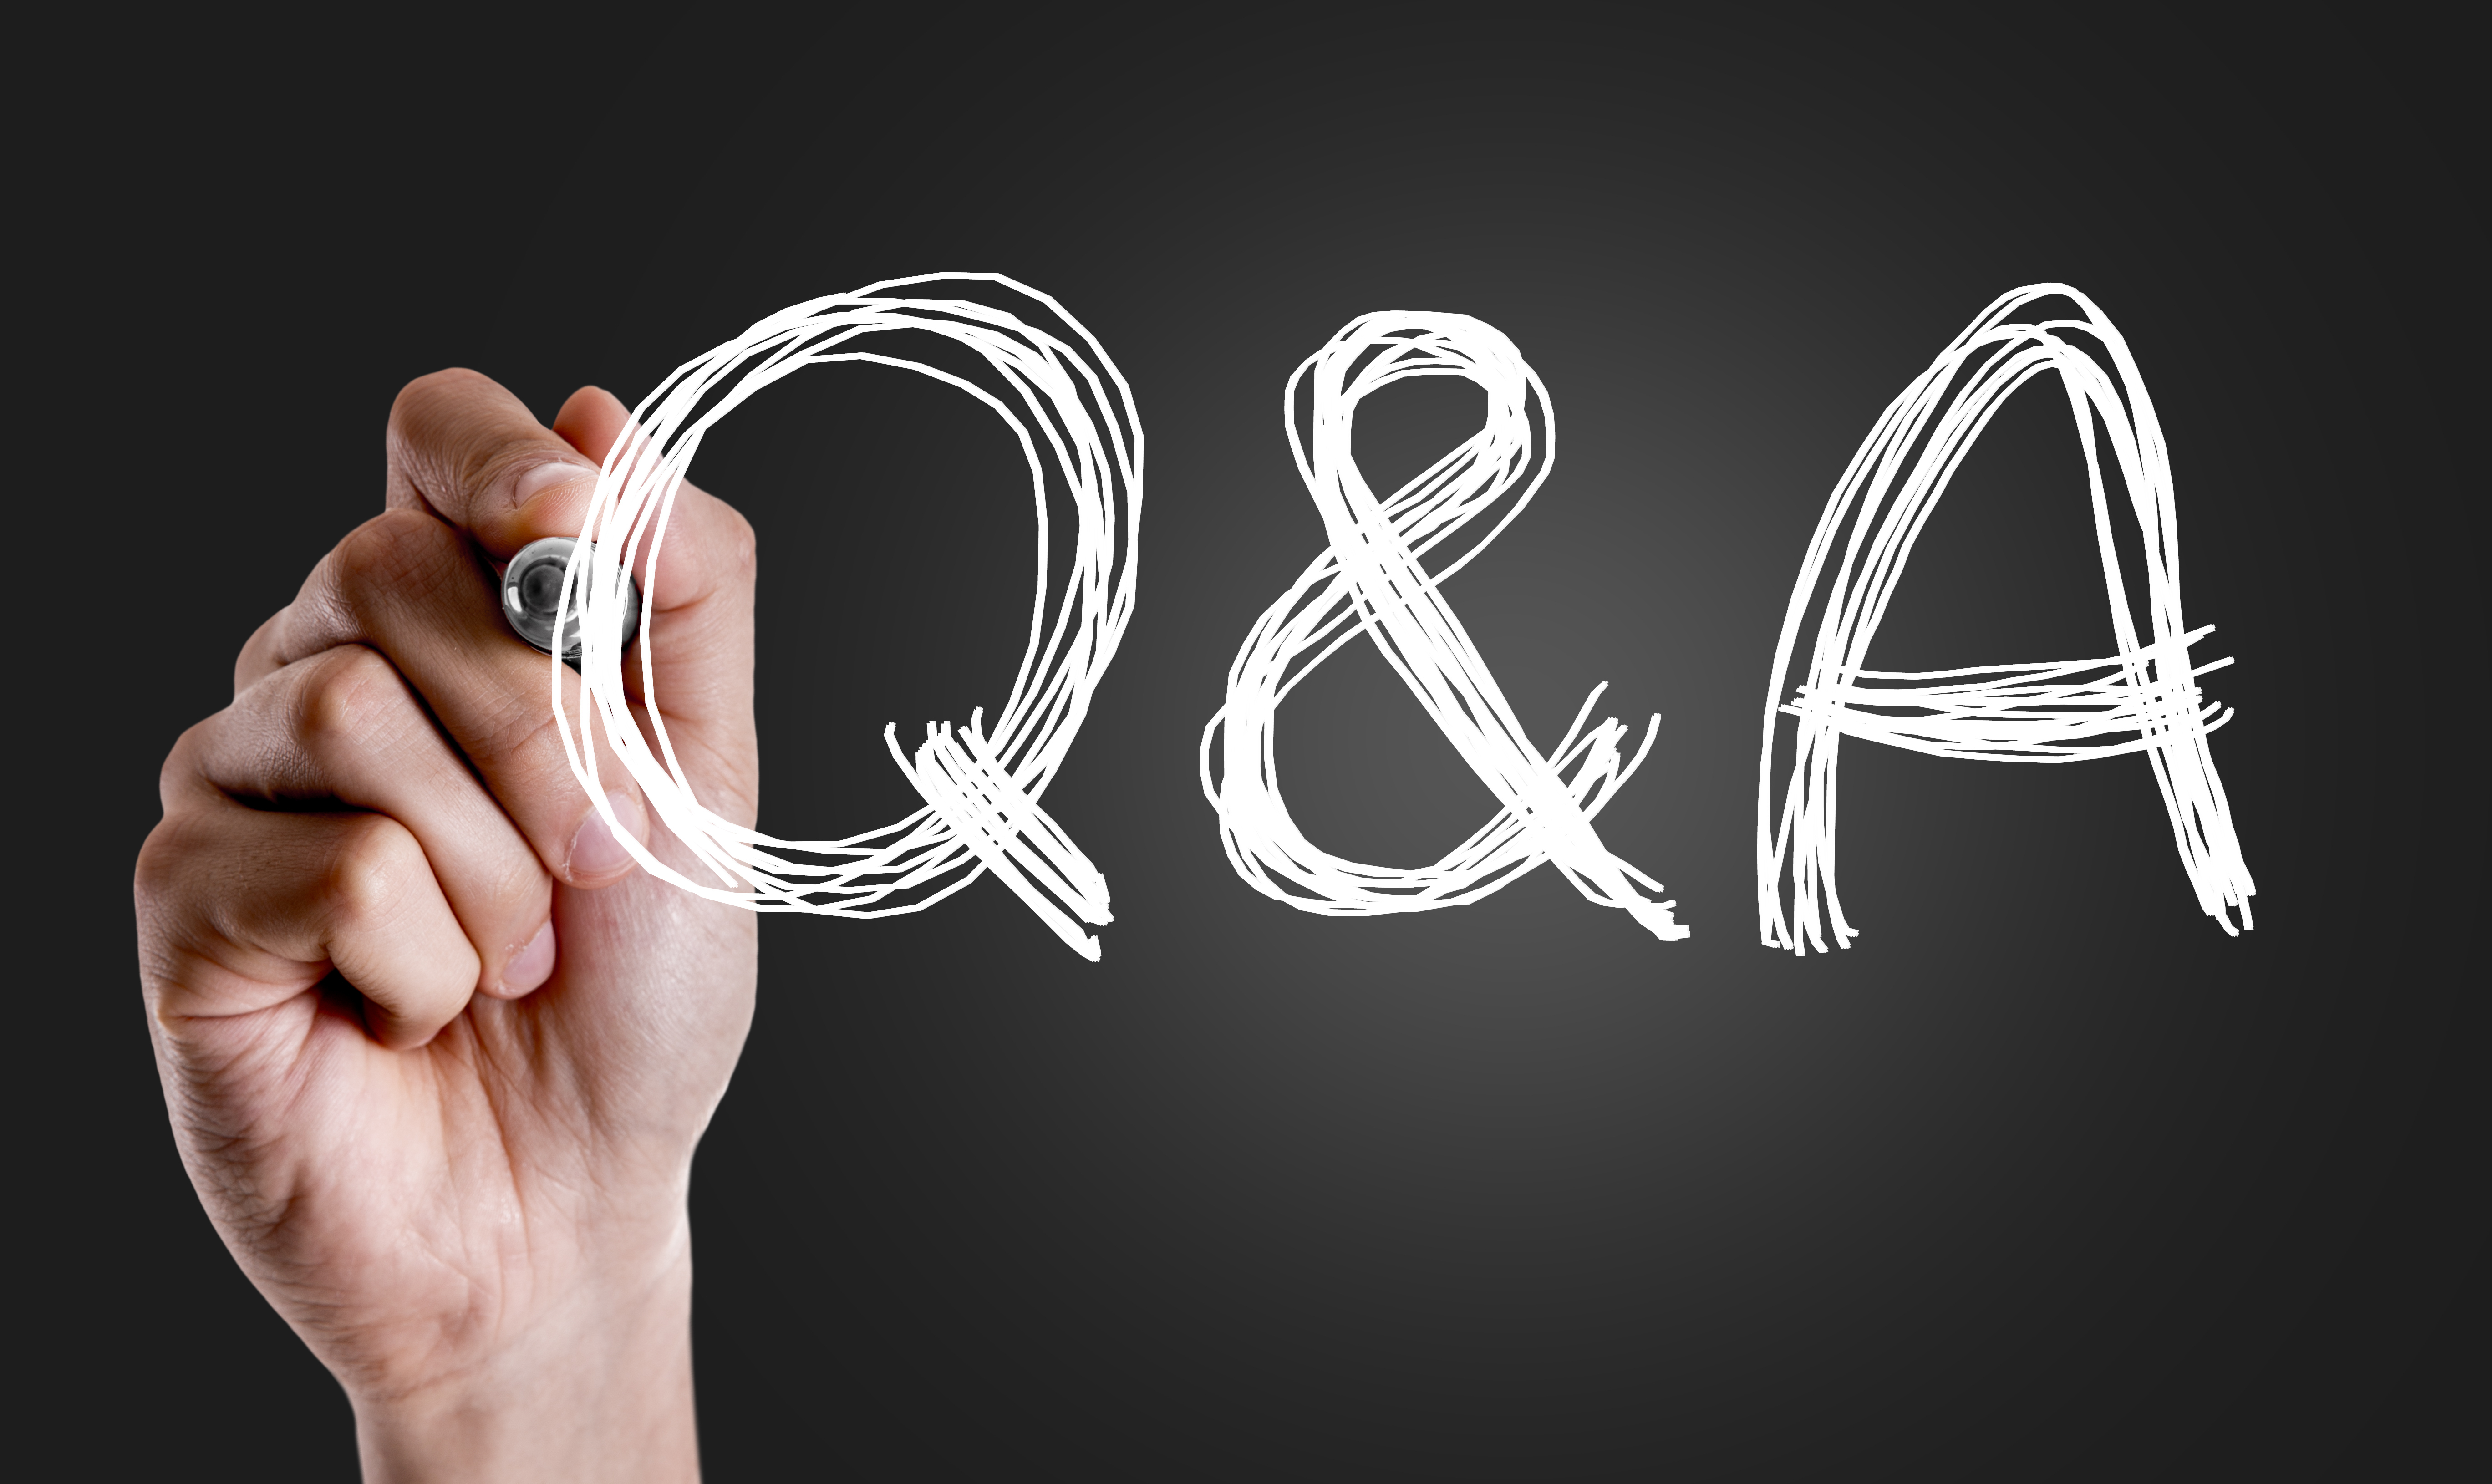 q&a clipart free 10 free Cliparts   Download images on